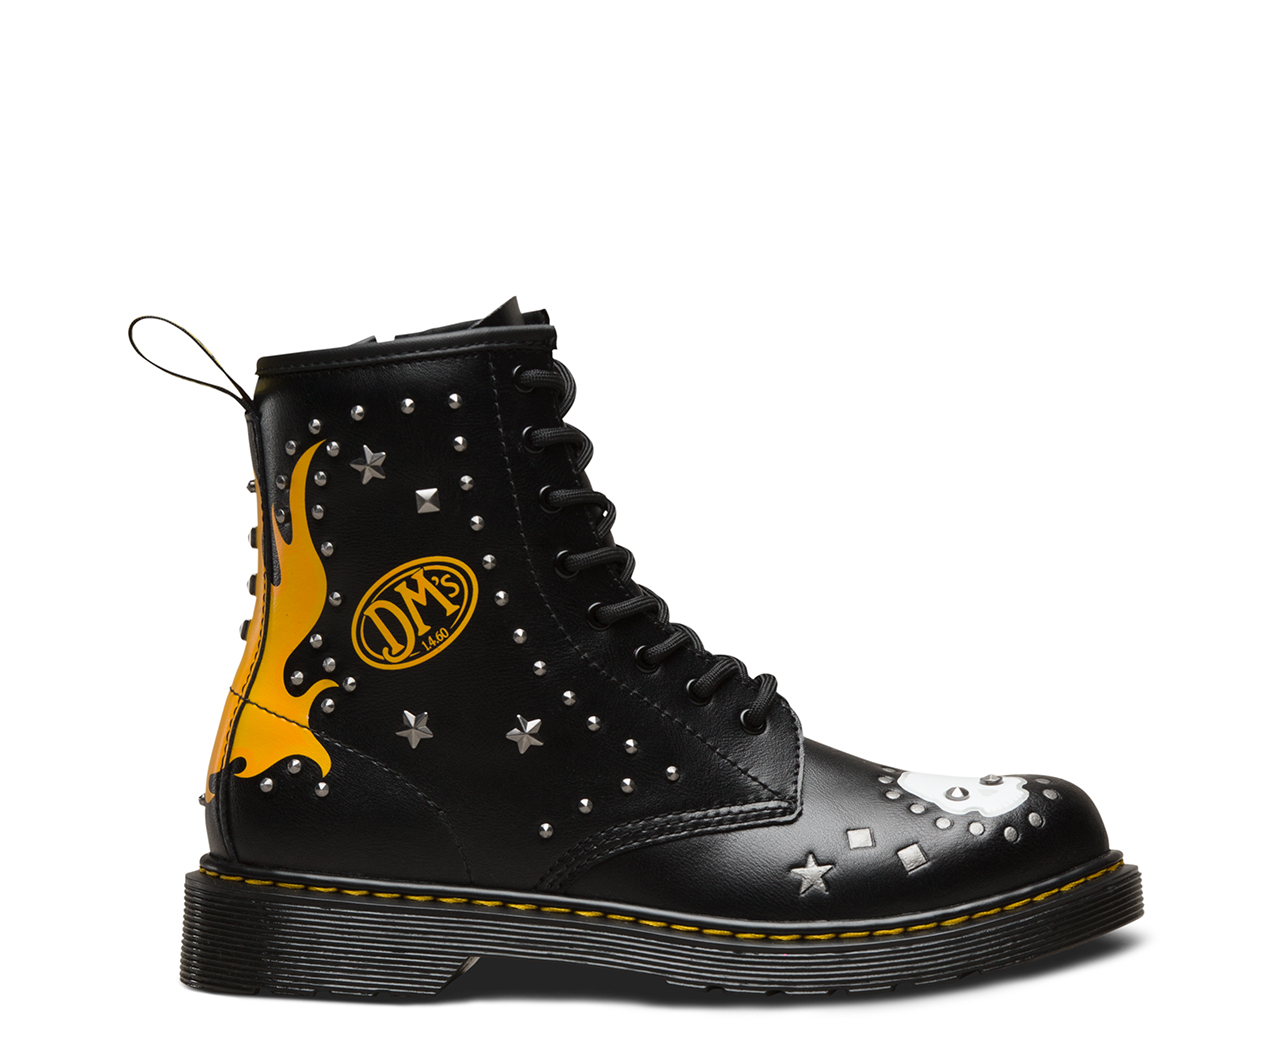 NYBERG | Rock and Roll Collection | Boots, chaussures et